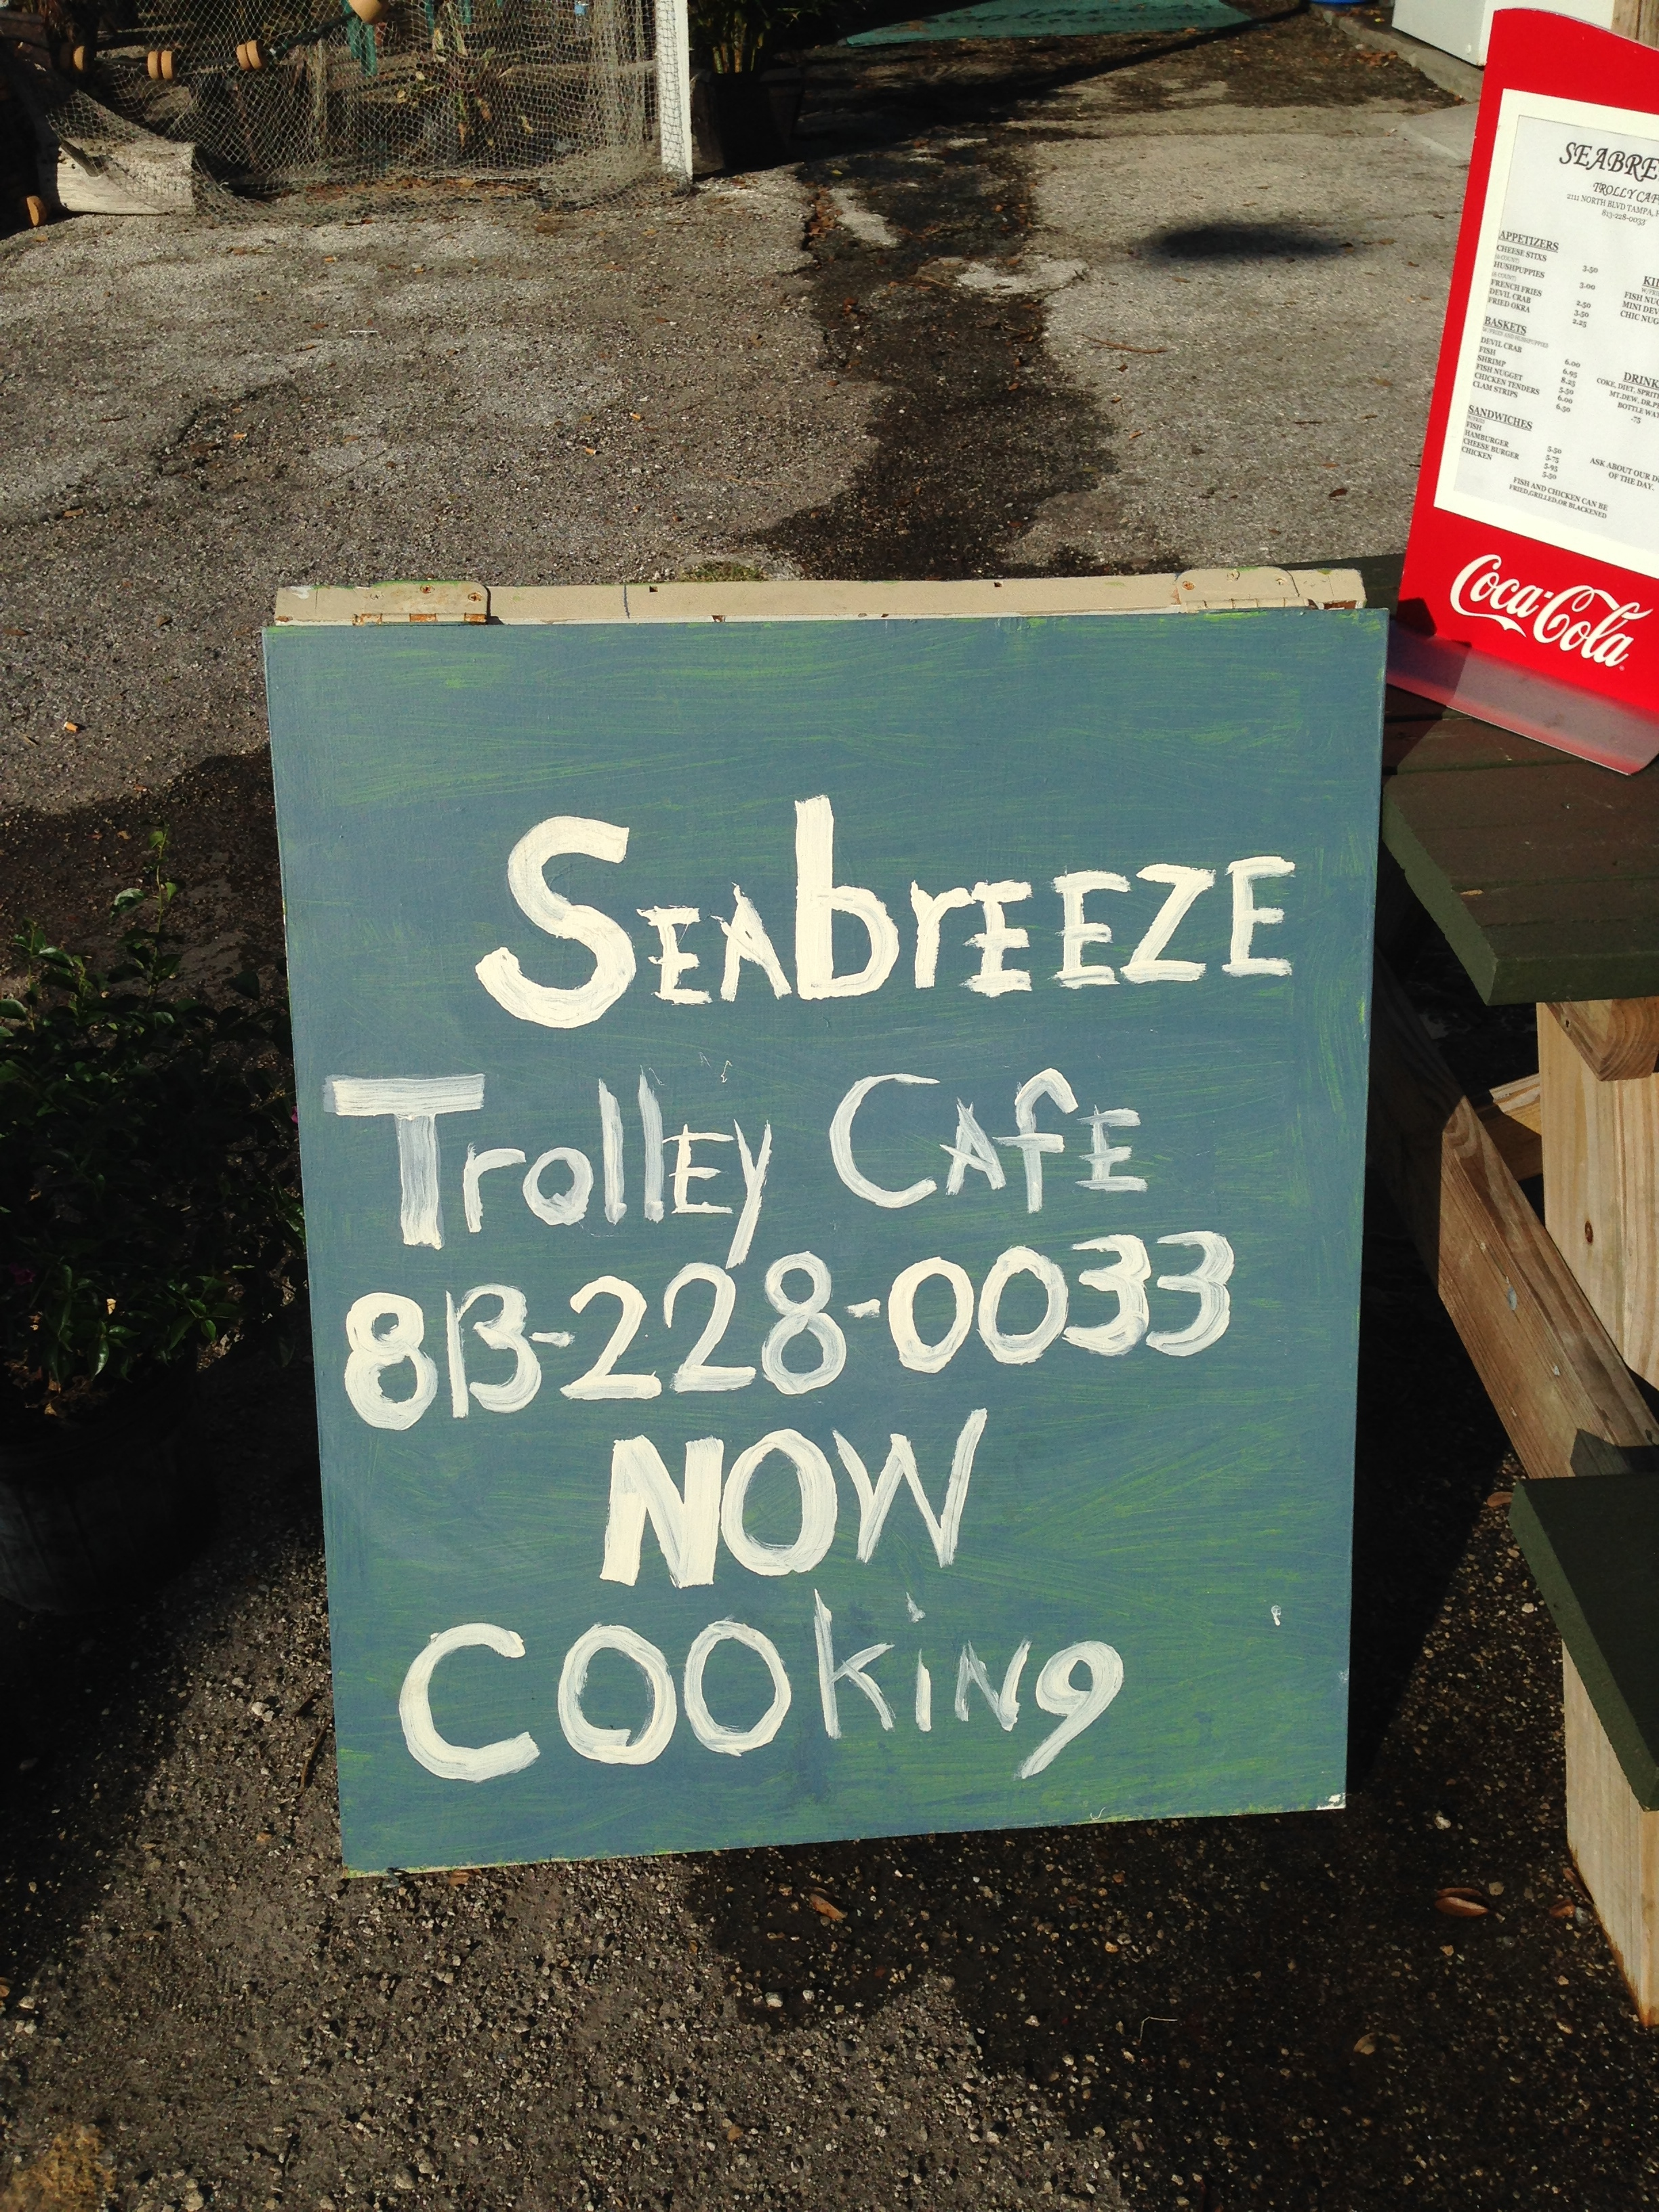 Seabreeze Trolley Cafe